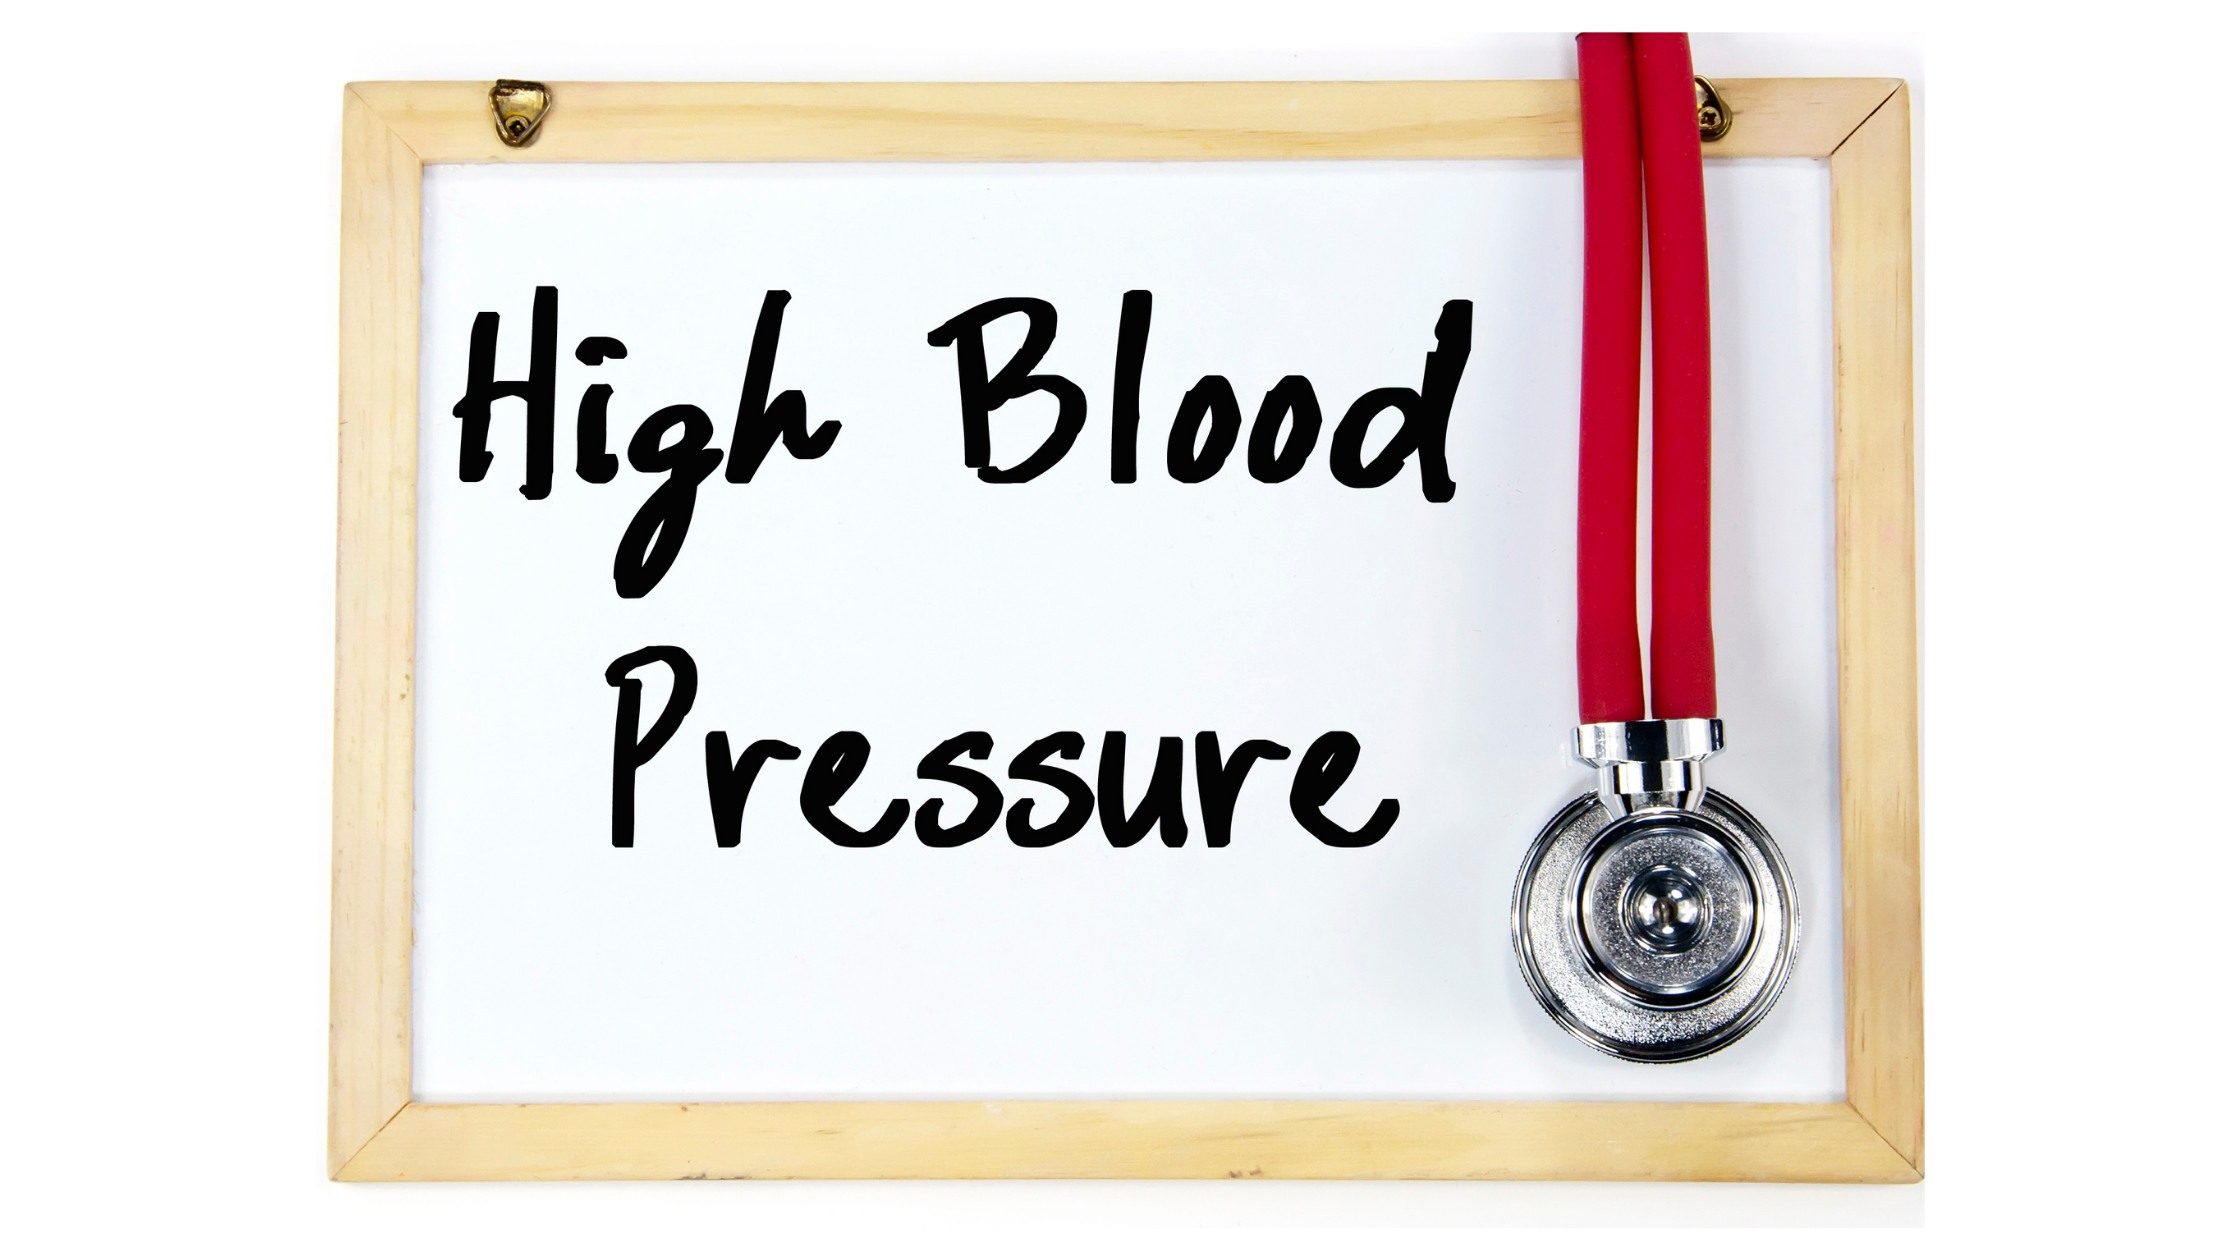 High Blood Pressure & Diet